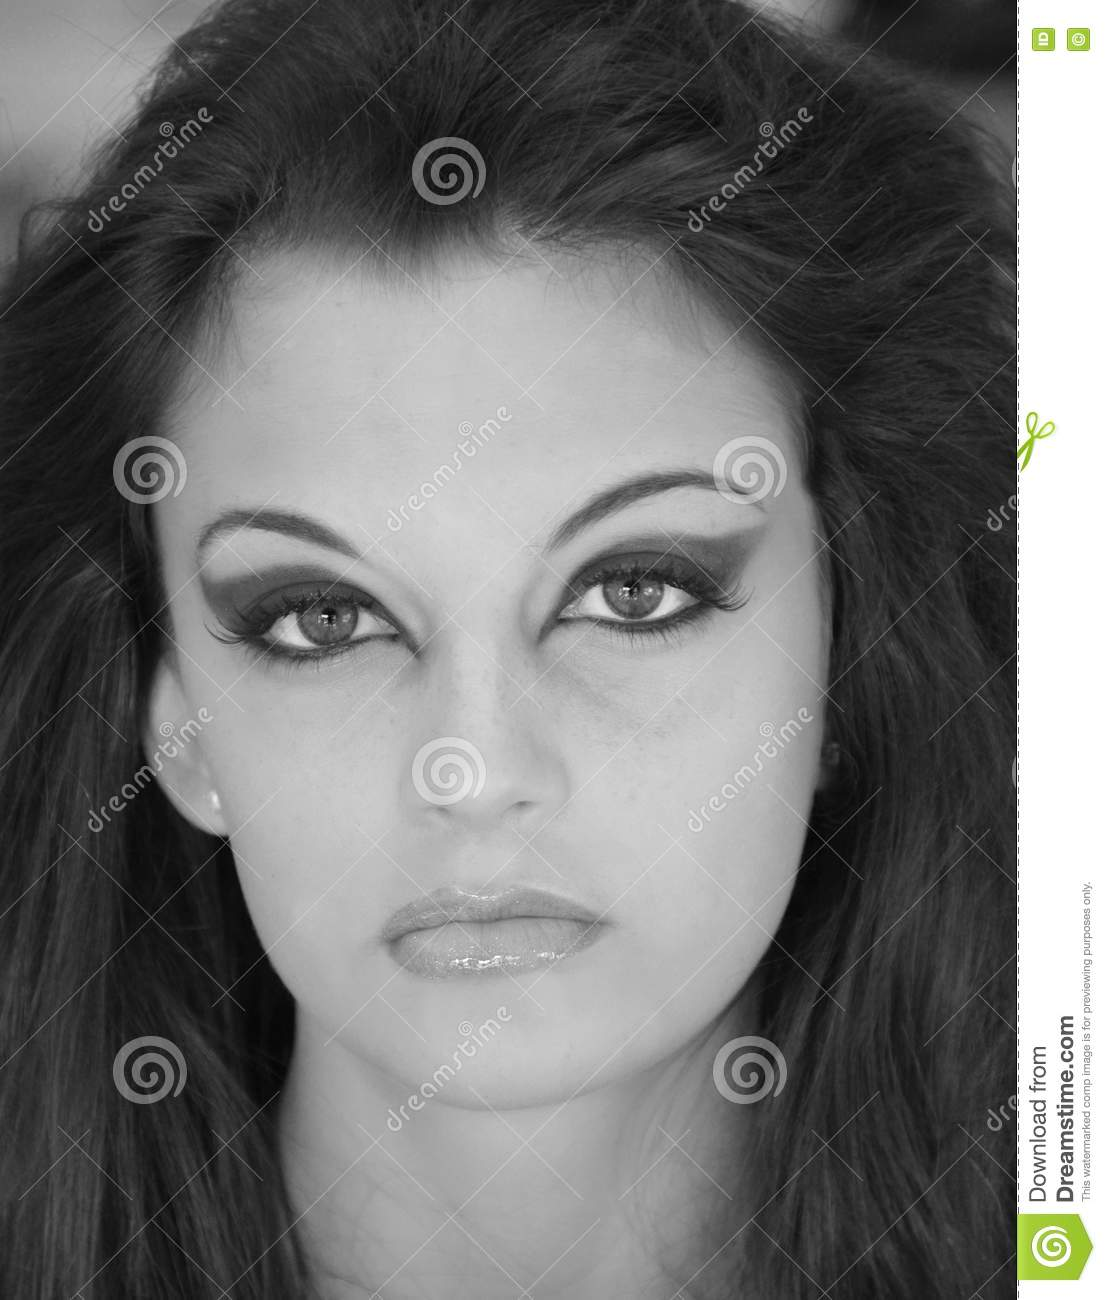 Muticolored eye make up stock photo istock istock pt br ...